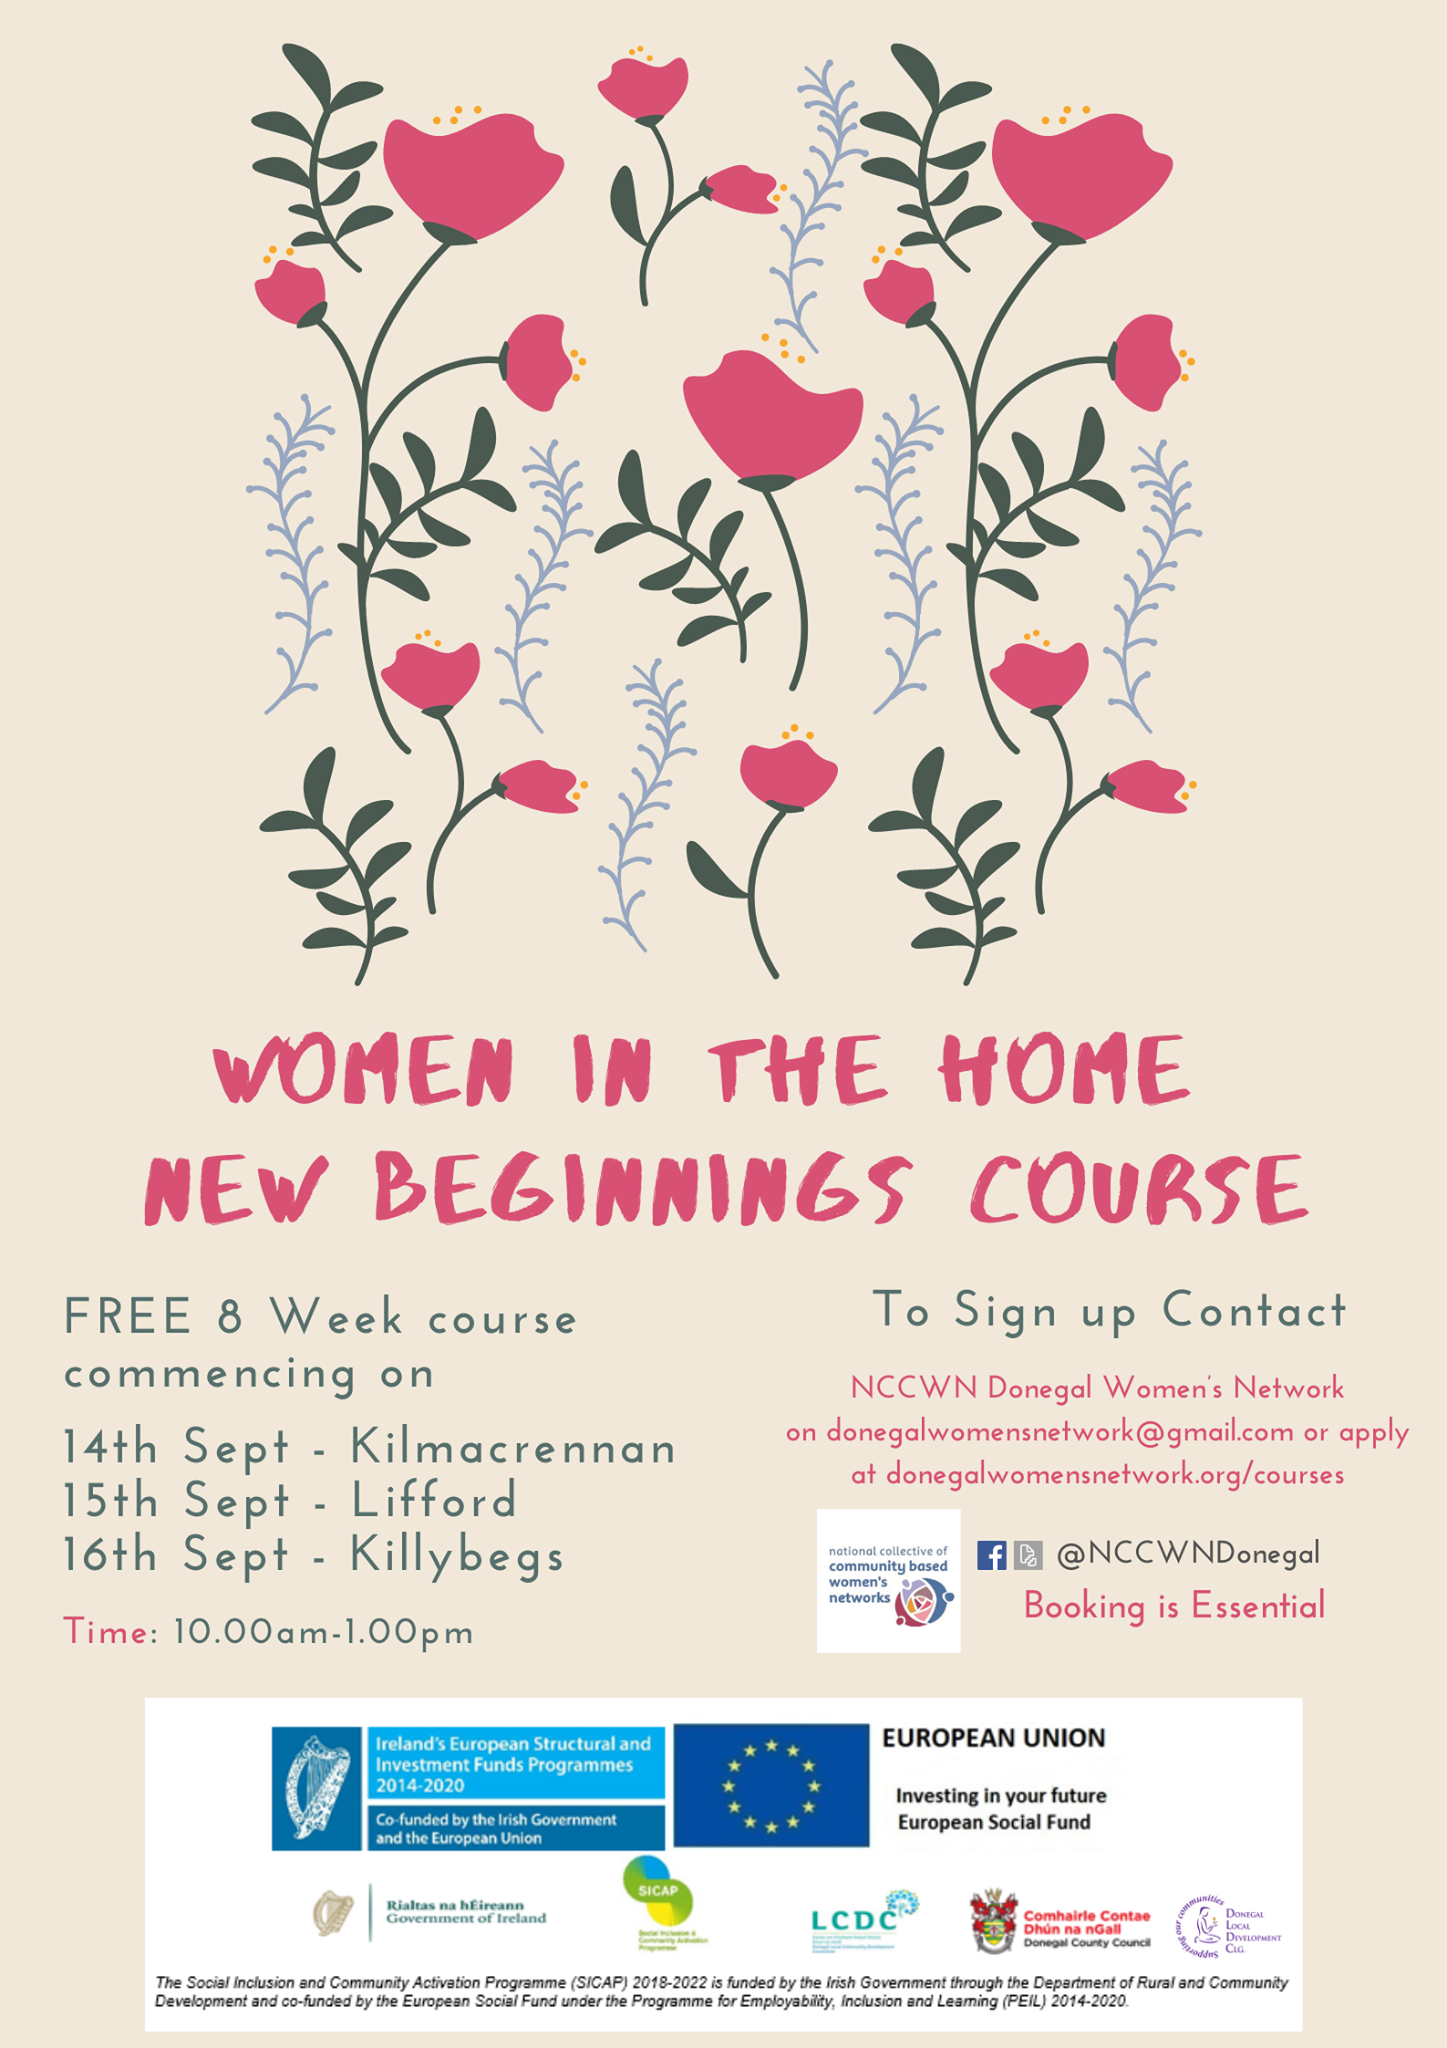 NCCWN Donegal Women in the Home, New Beginnings course